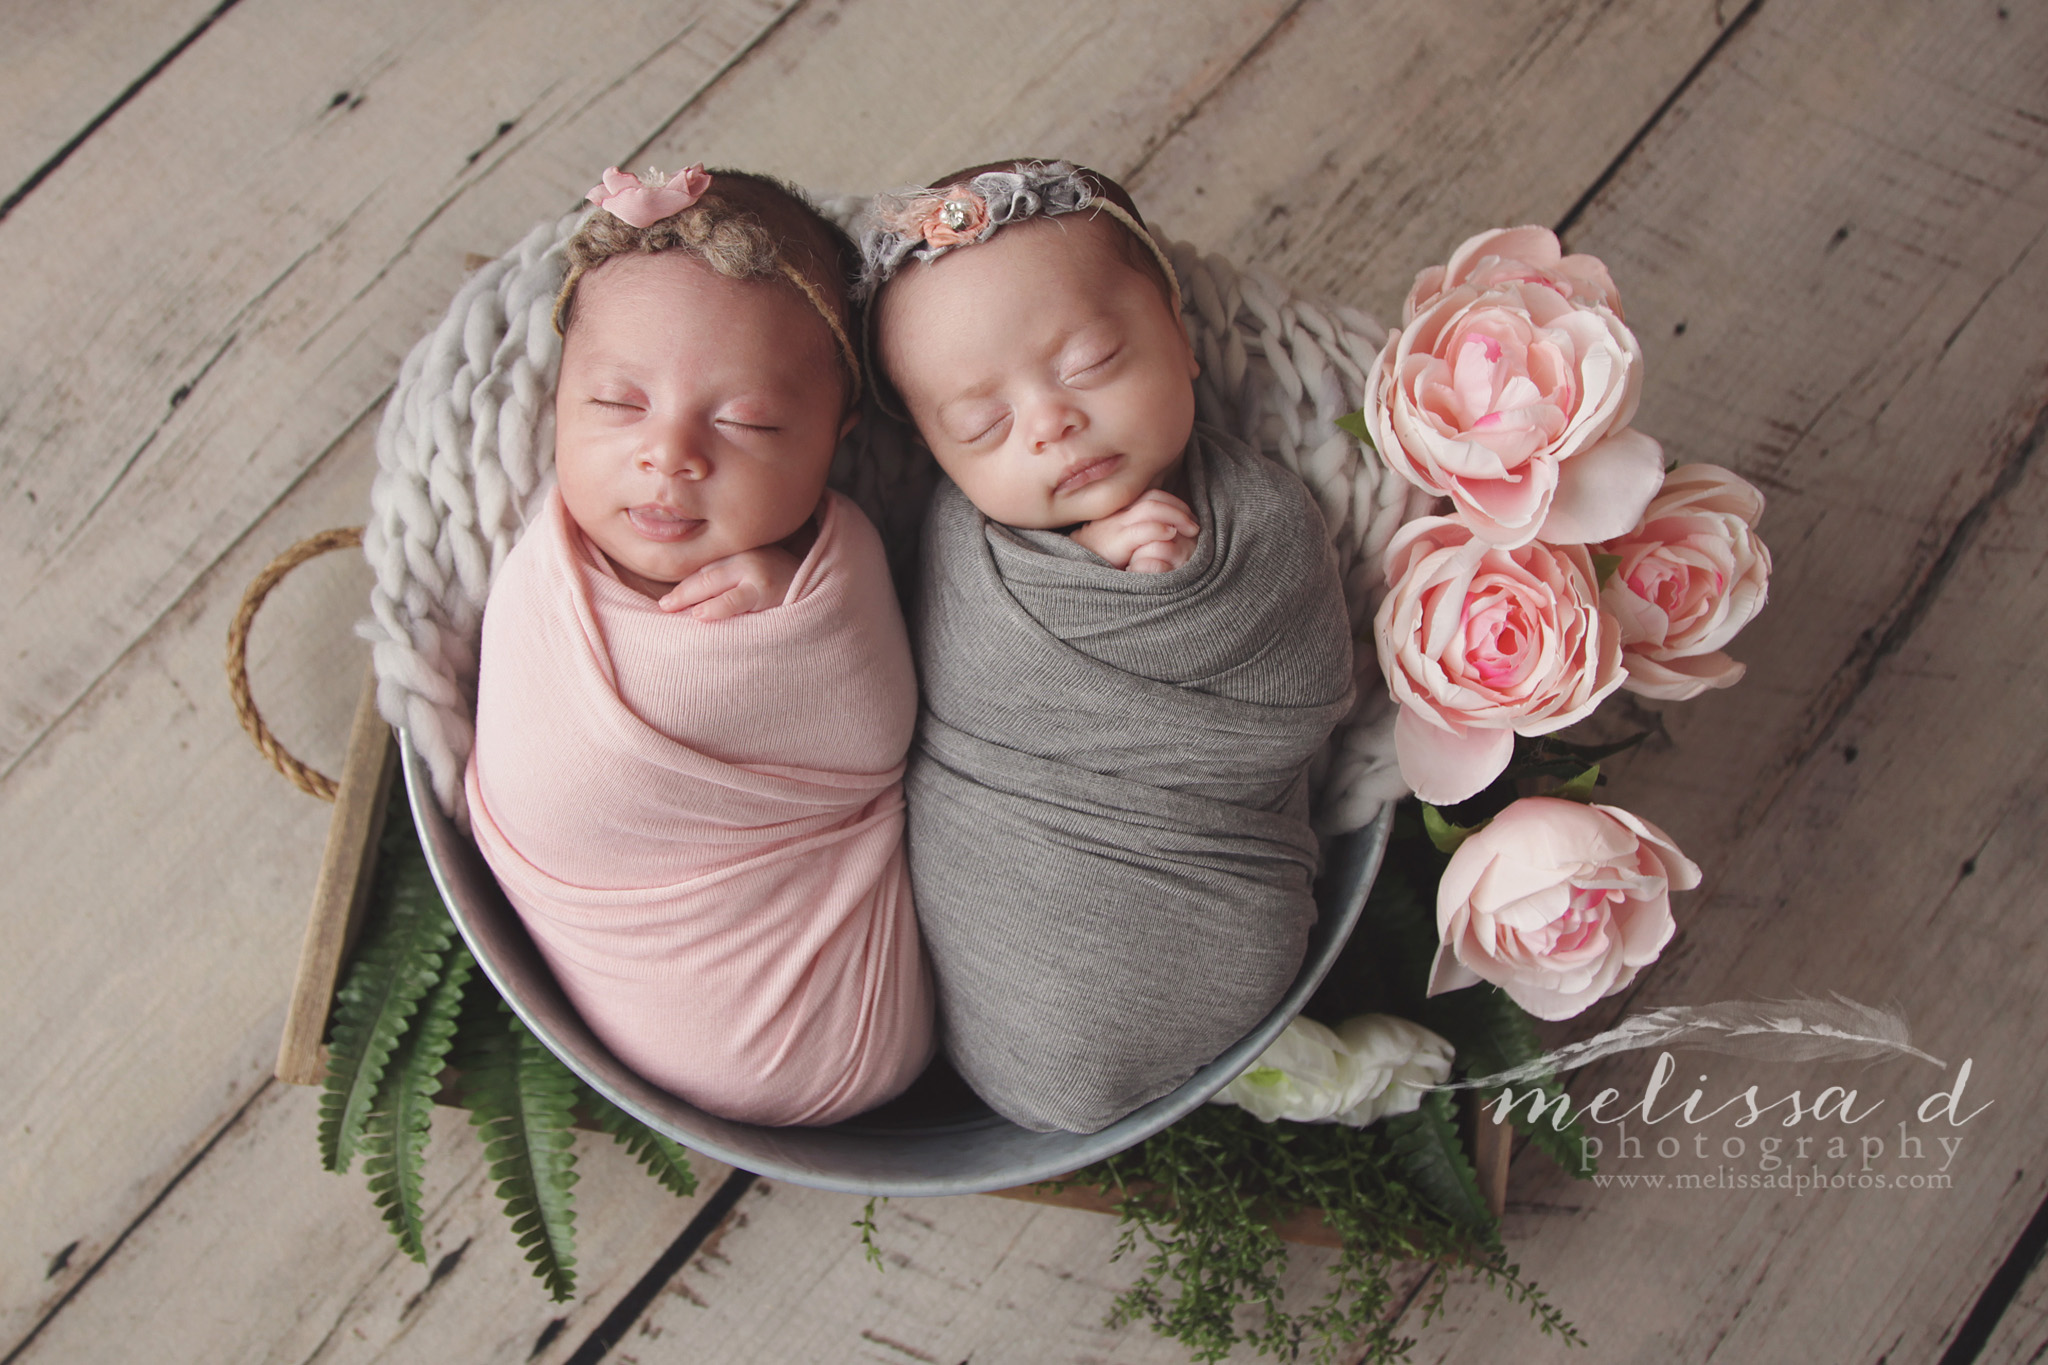 Ft. Worth Newborn Twin Photographer wrapped in prop flowers